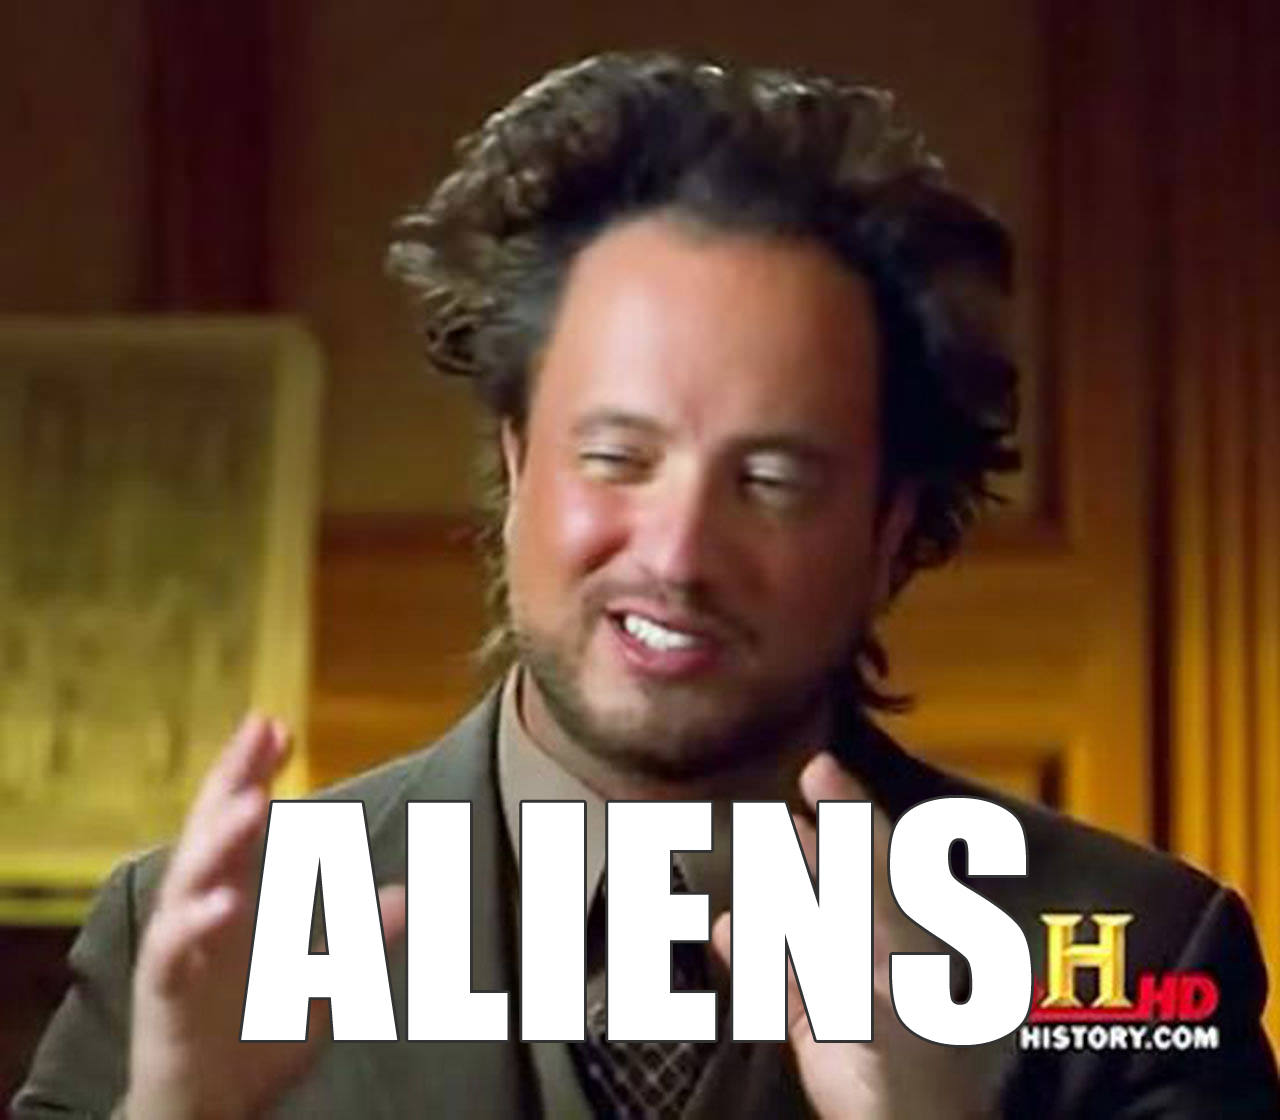 ancient-aliens-guy.jpg